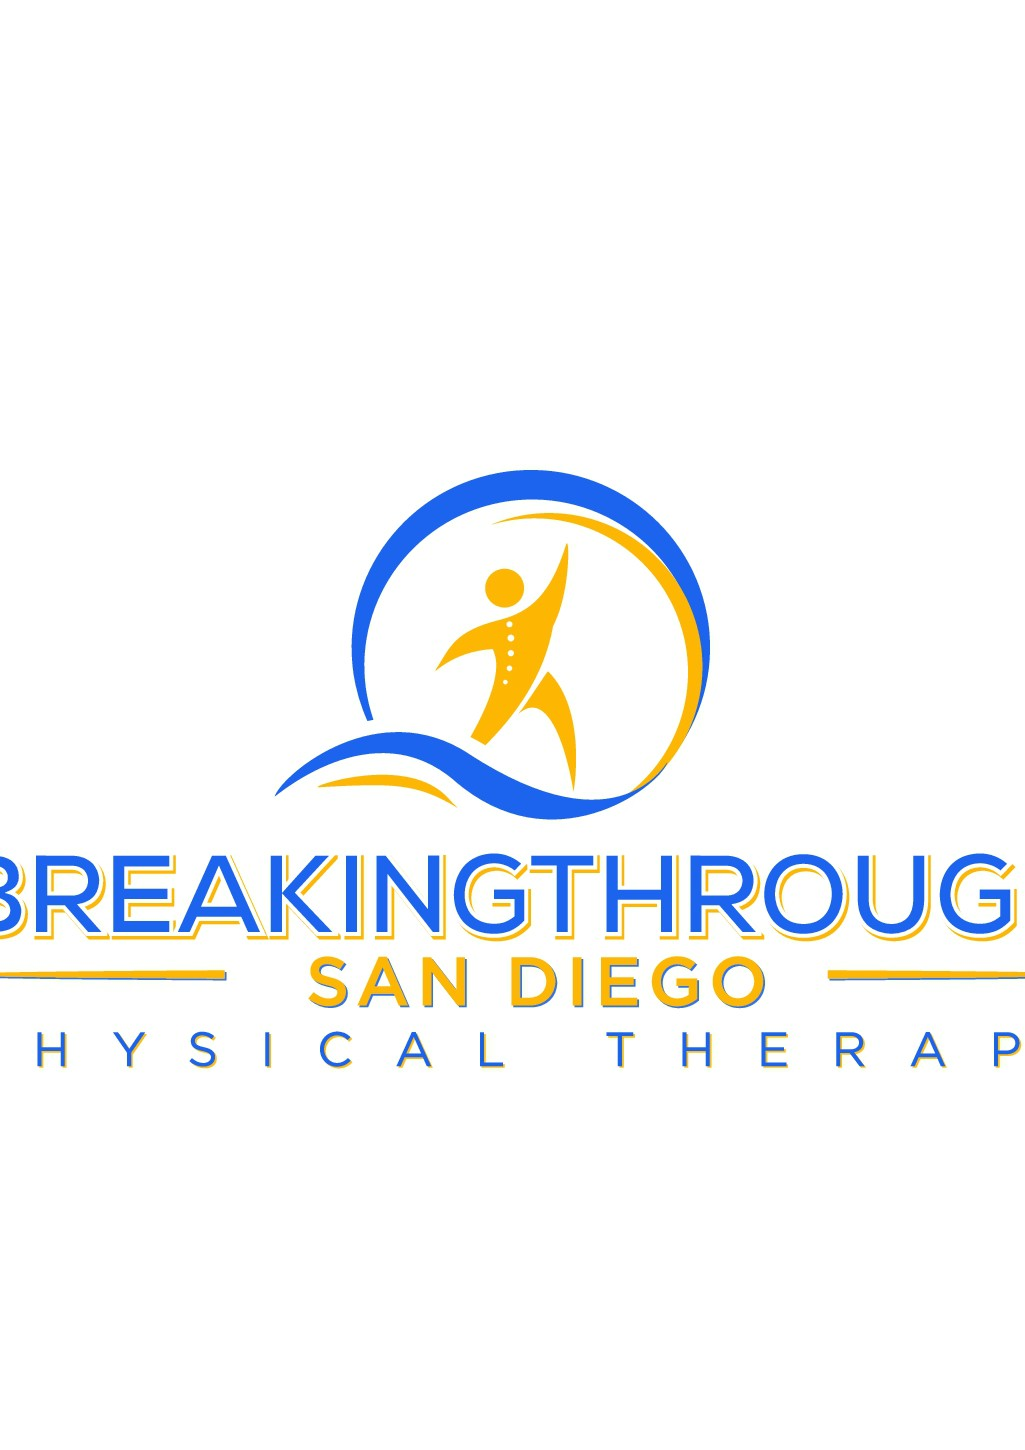 BreakingThrough San Diego Physical Therapy logo